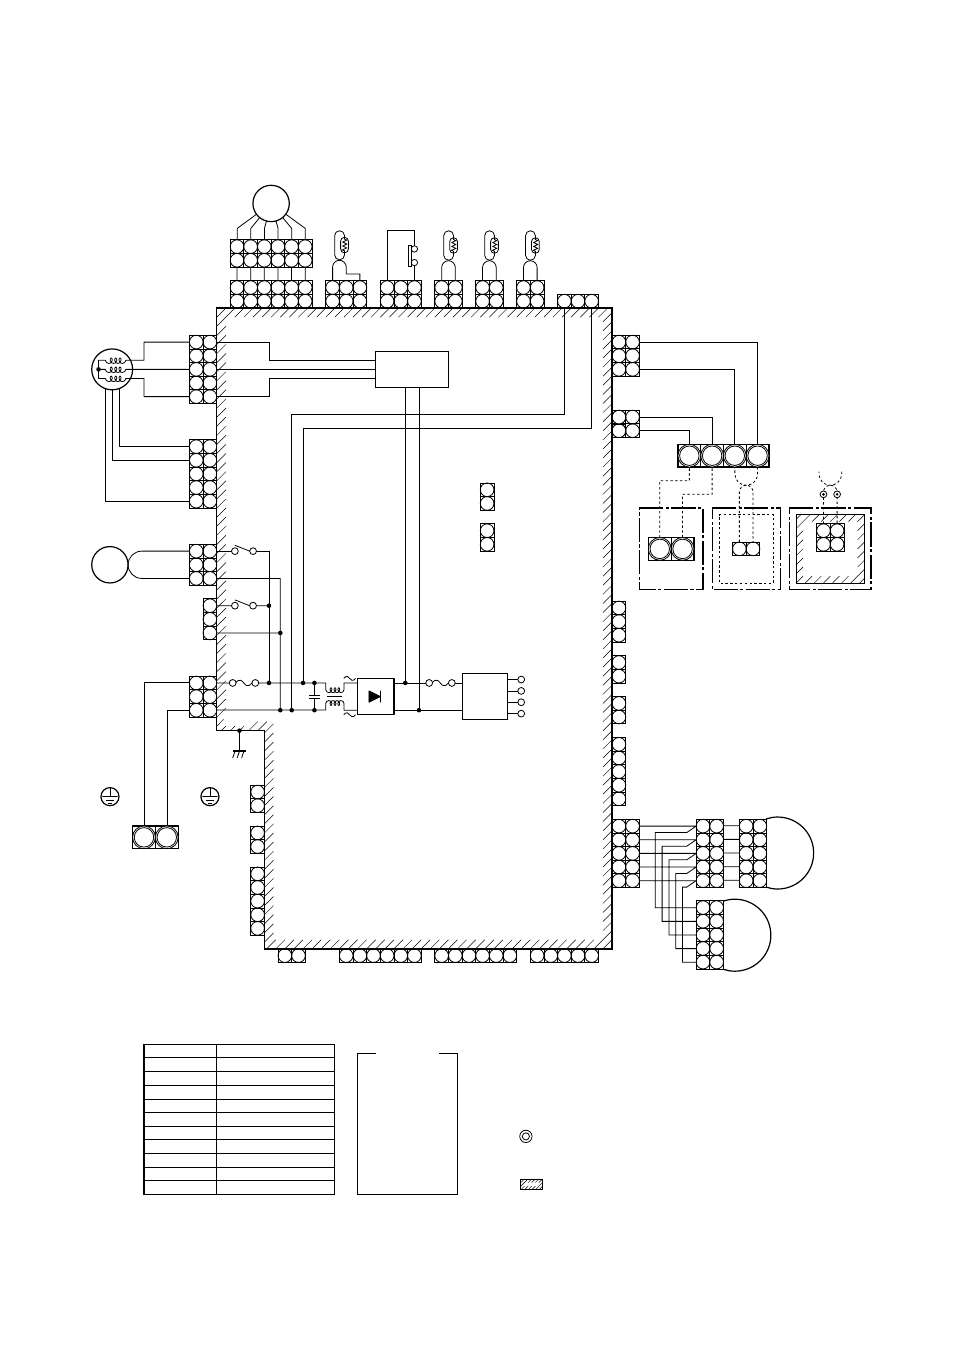 wiring diagram control p c board for indoor unit mcc. Black Bedroom Furniture Sets. Home Design Ideas